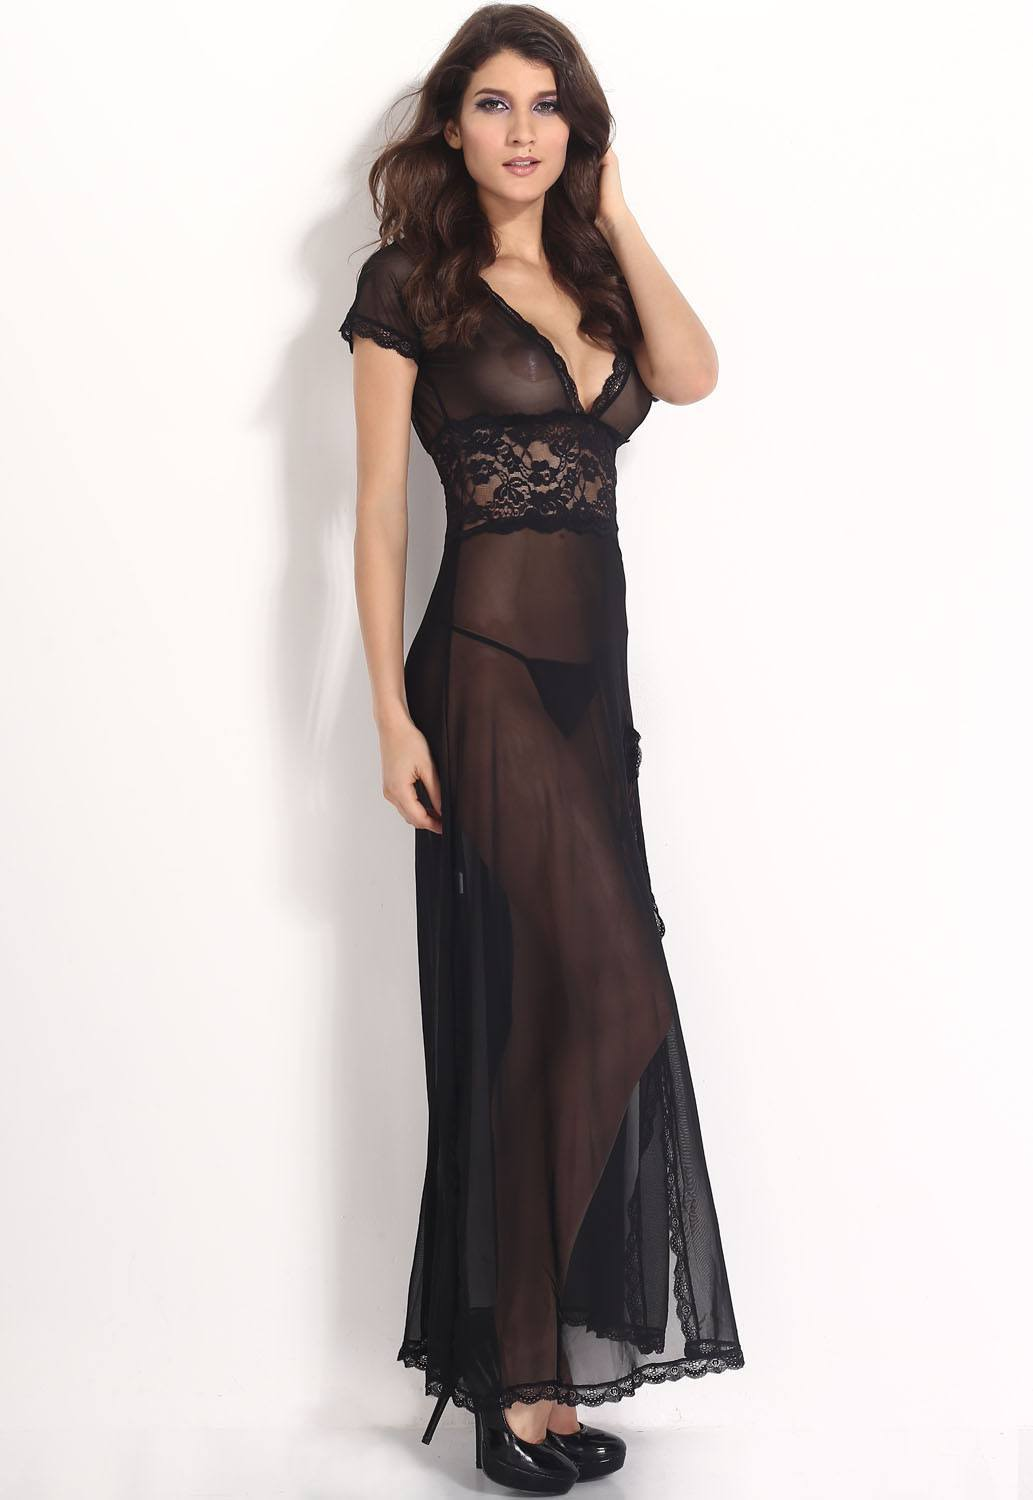 Lingerie - Black Mesh And Lace V Neck Lingerie Gown